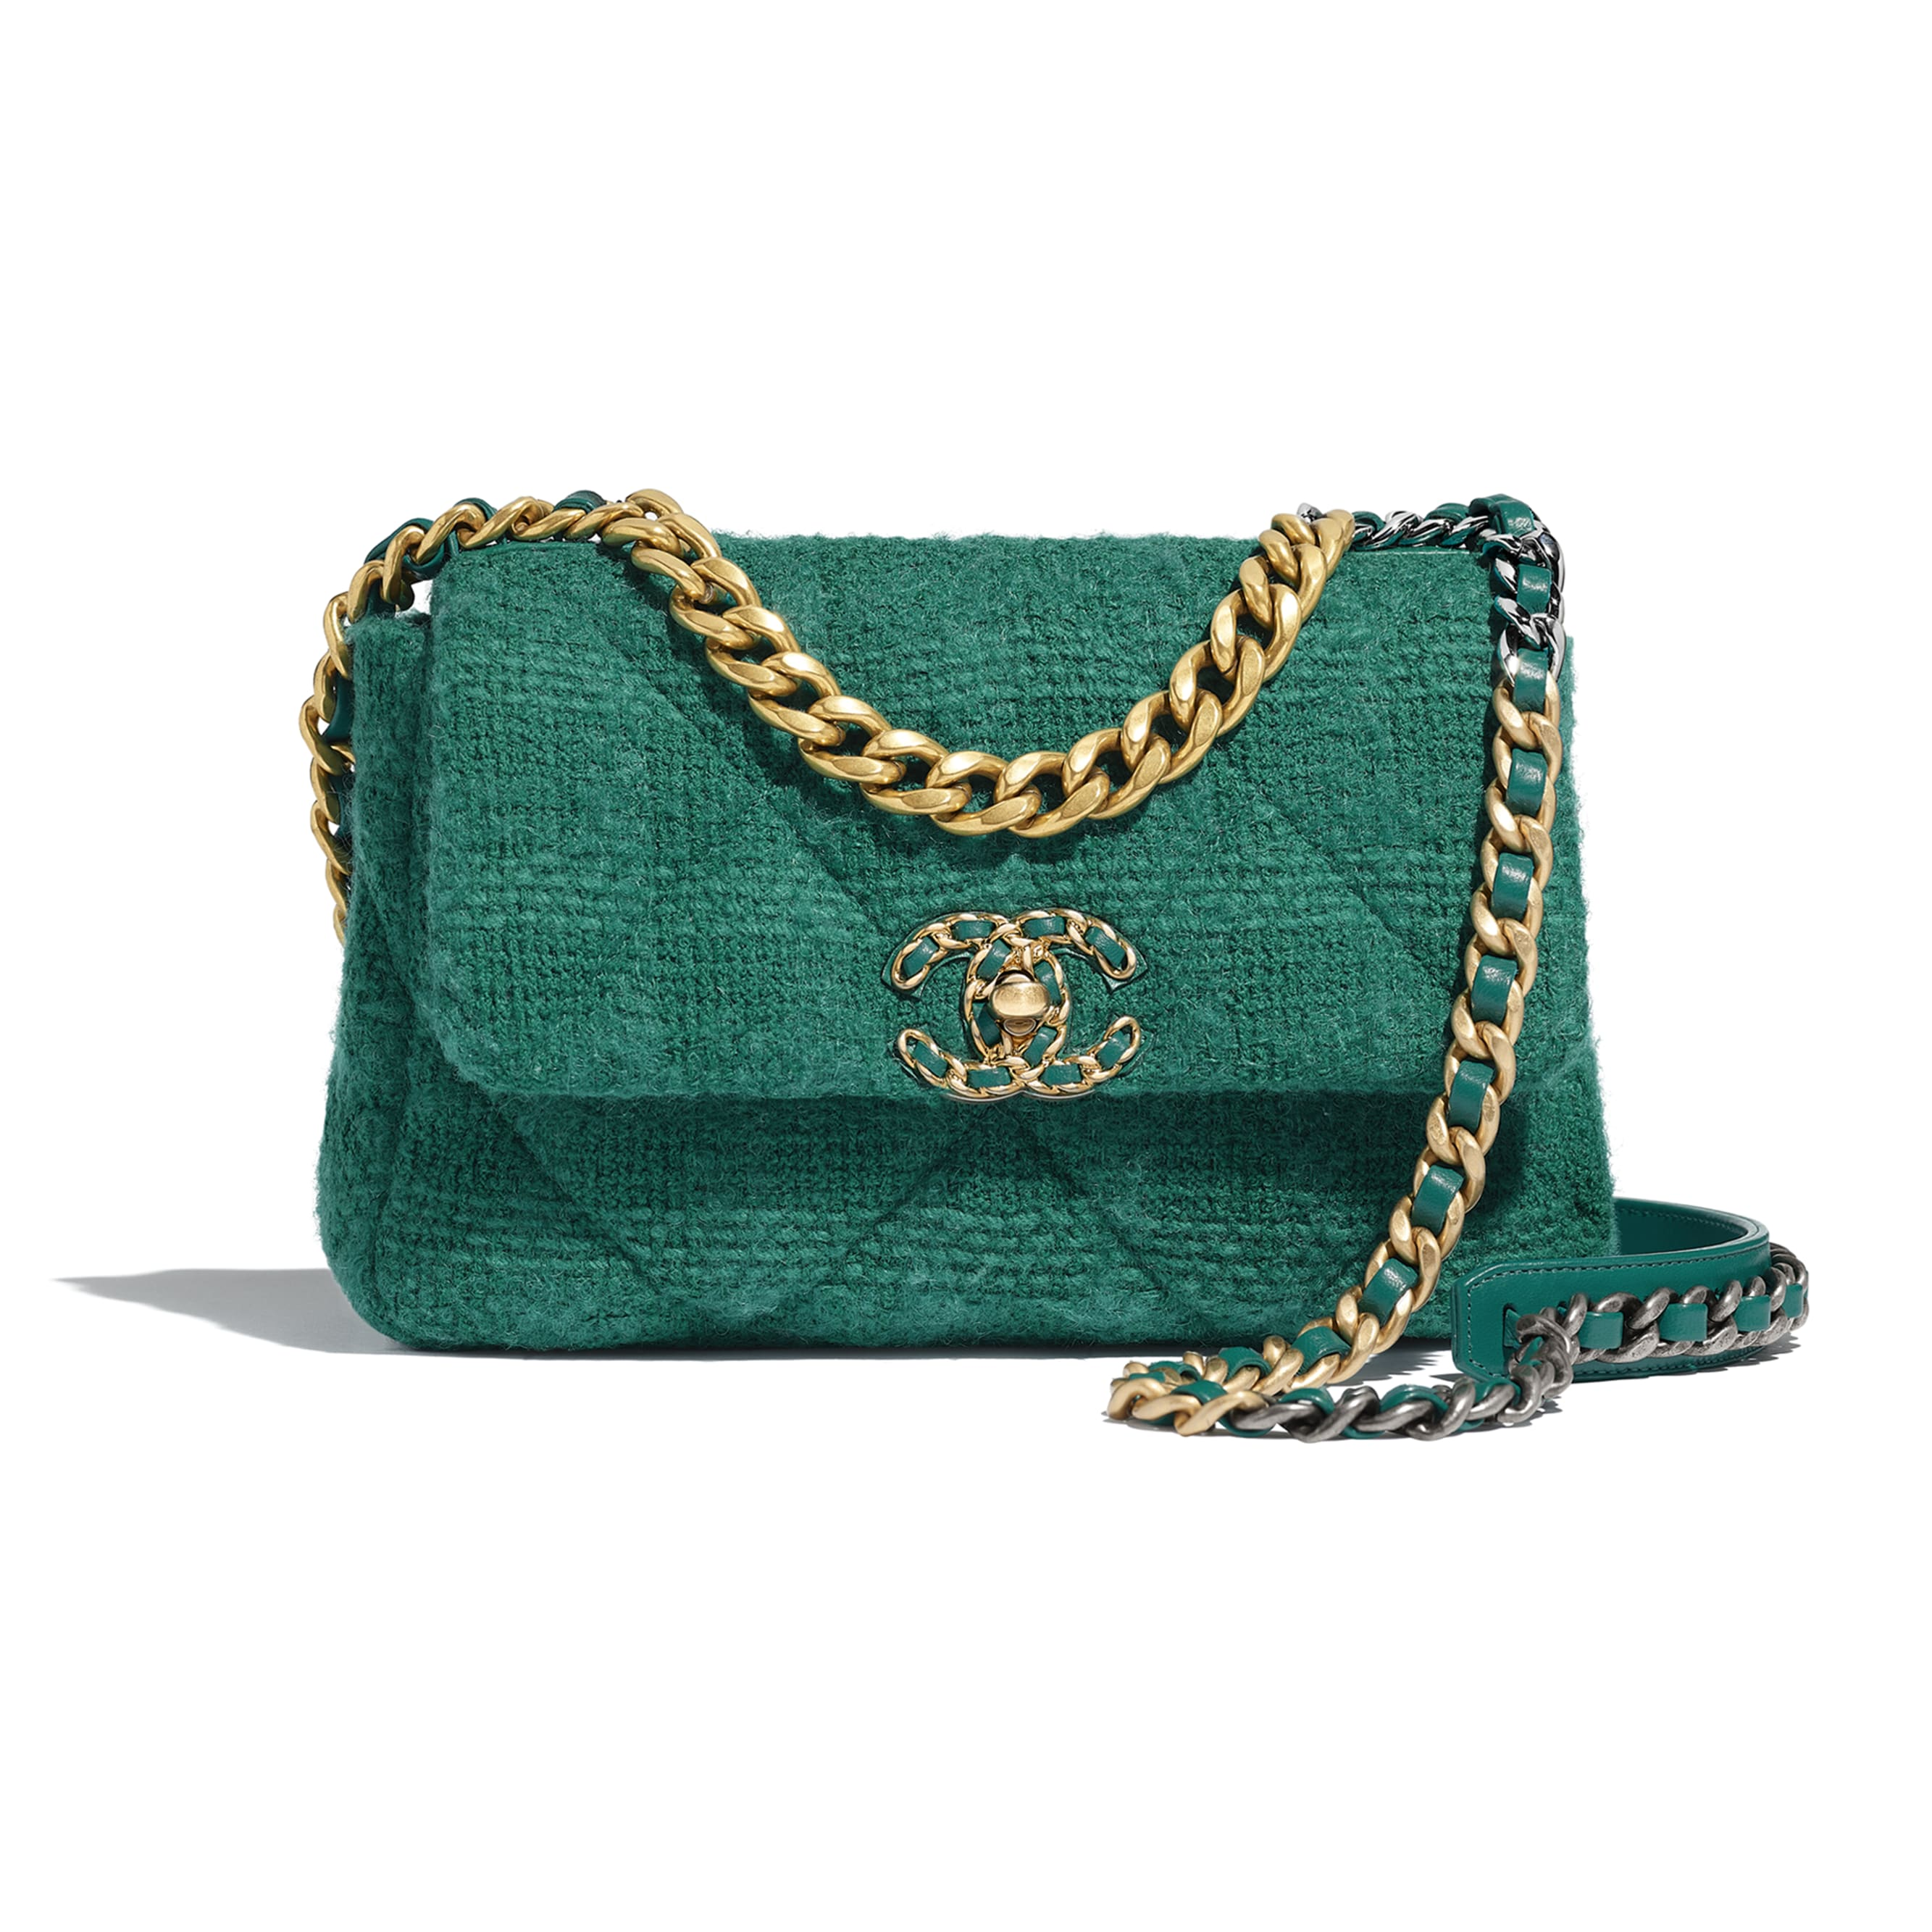 CHANEL 19 Flap Bag - Green - Wool Tweed, Gold-Tone, Silver-Tone & Ruthenium-Finish Metal - Default view - see standard sized version